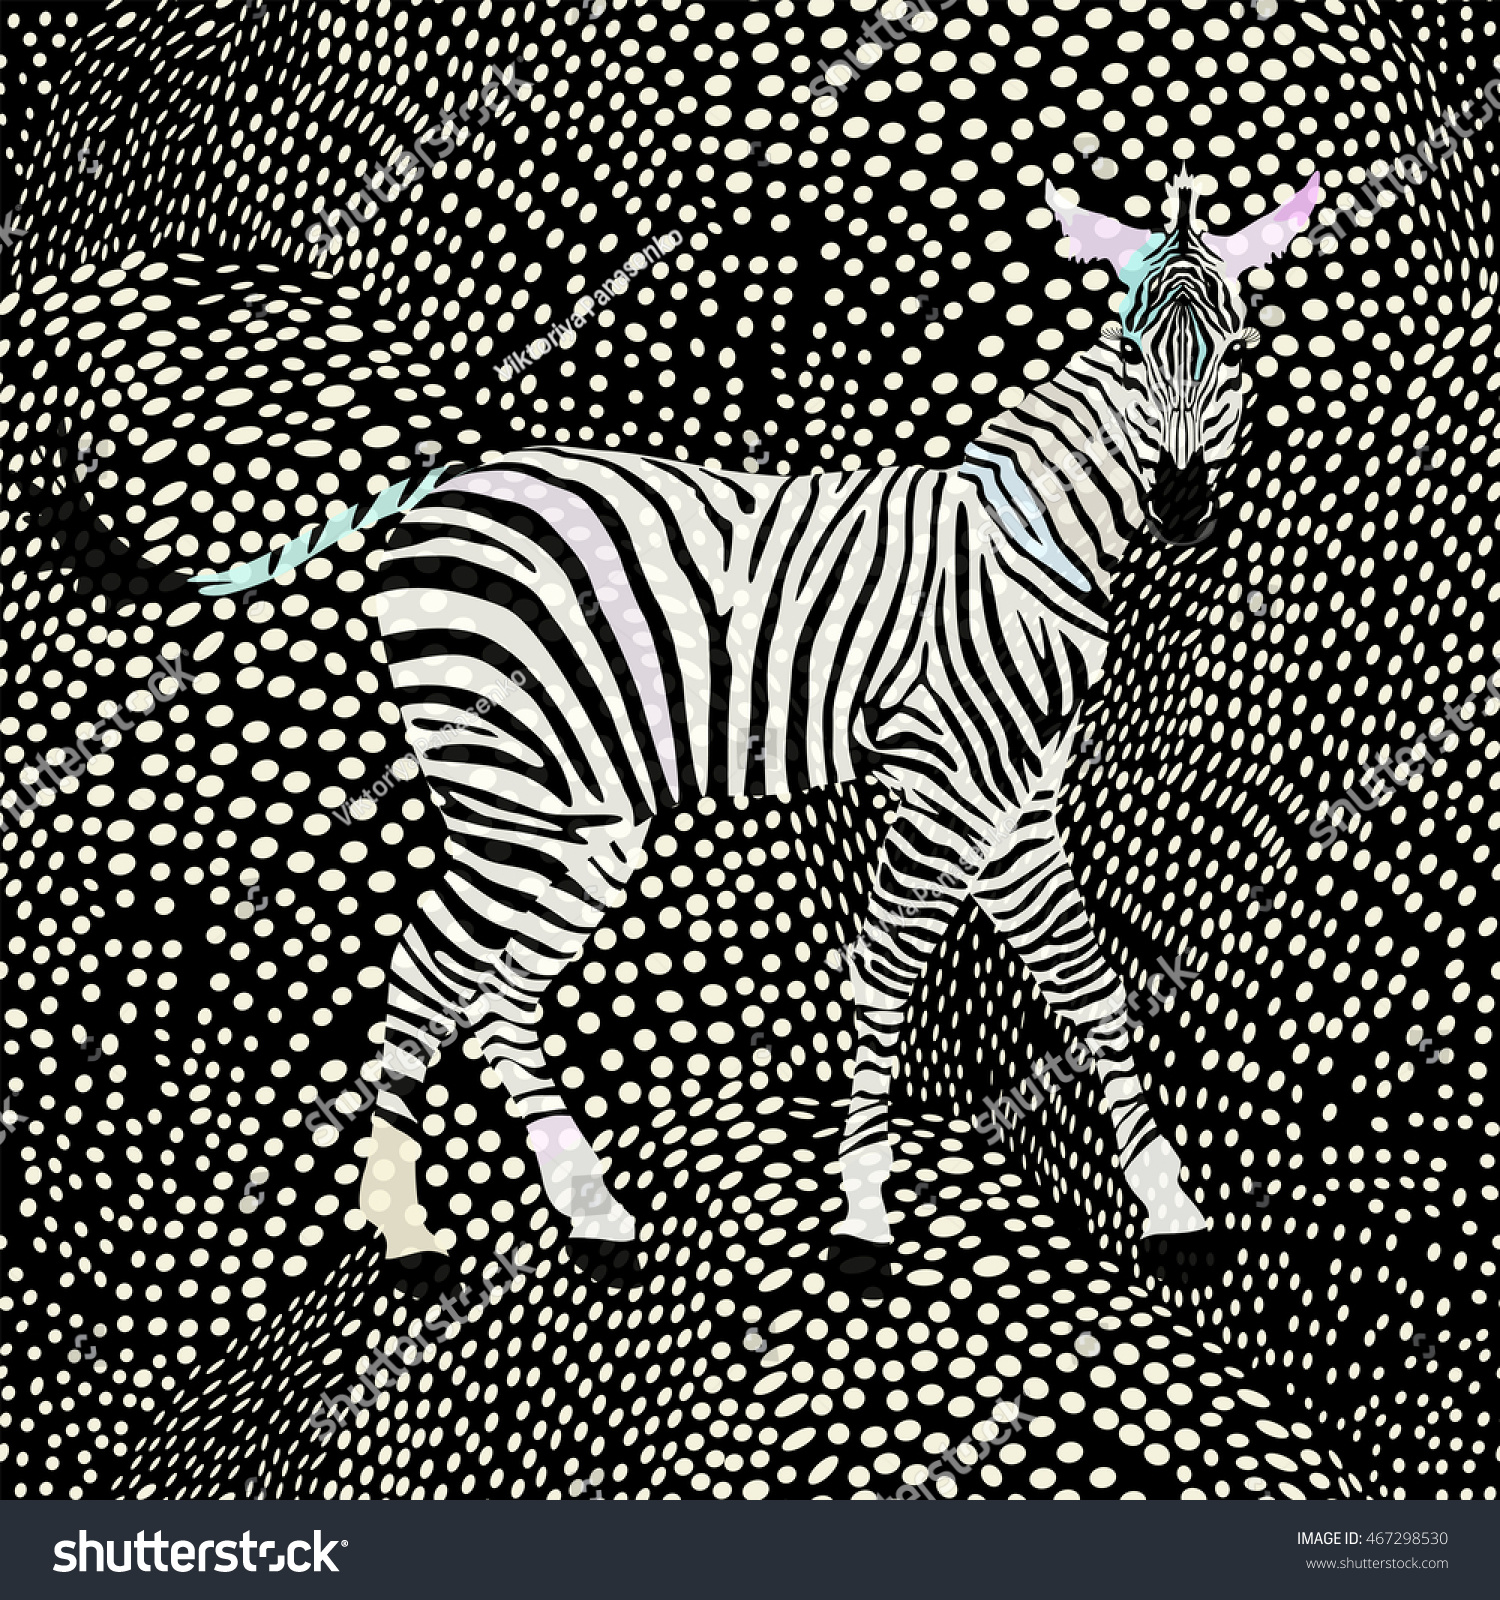 Abstract Draw Zebra In The Savannah Fashion Striped Polka Dot Print Color Black And